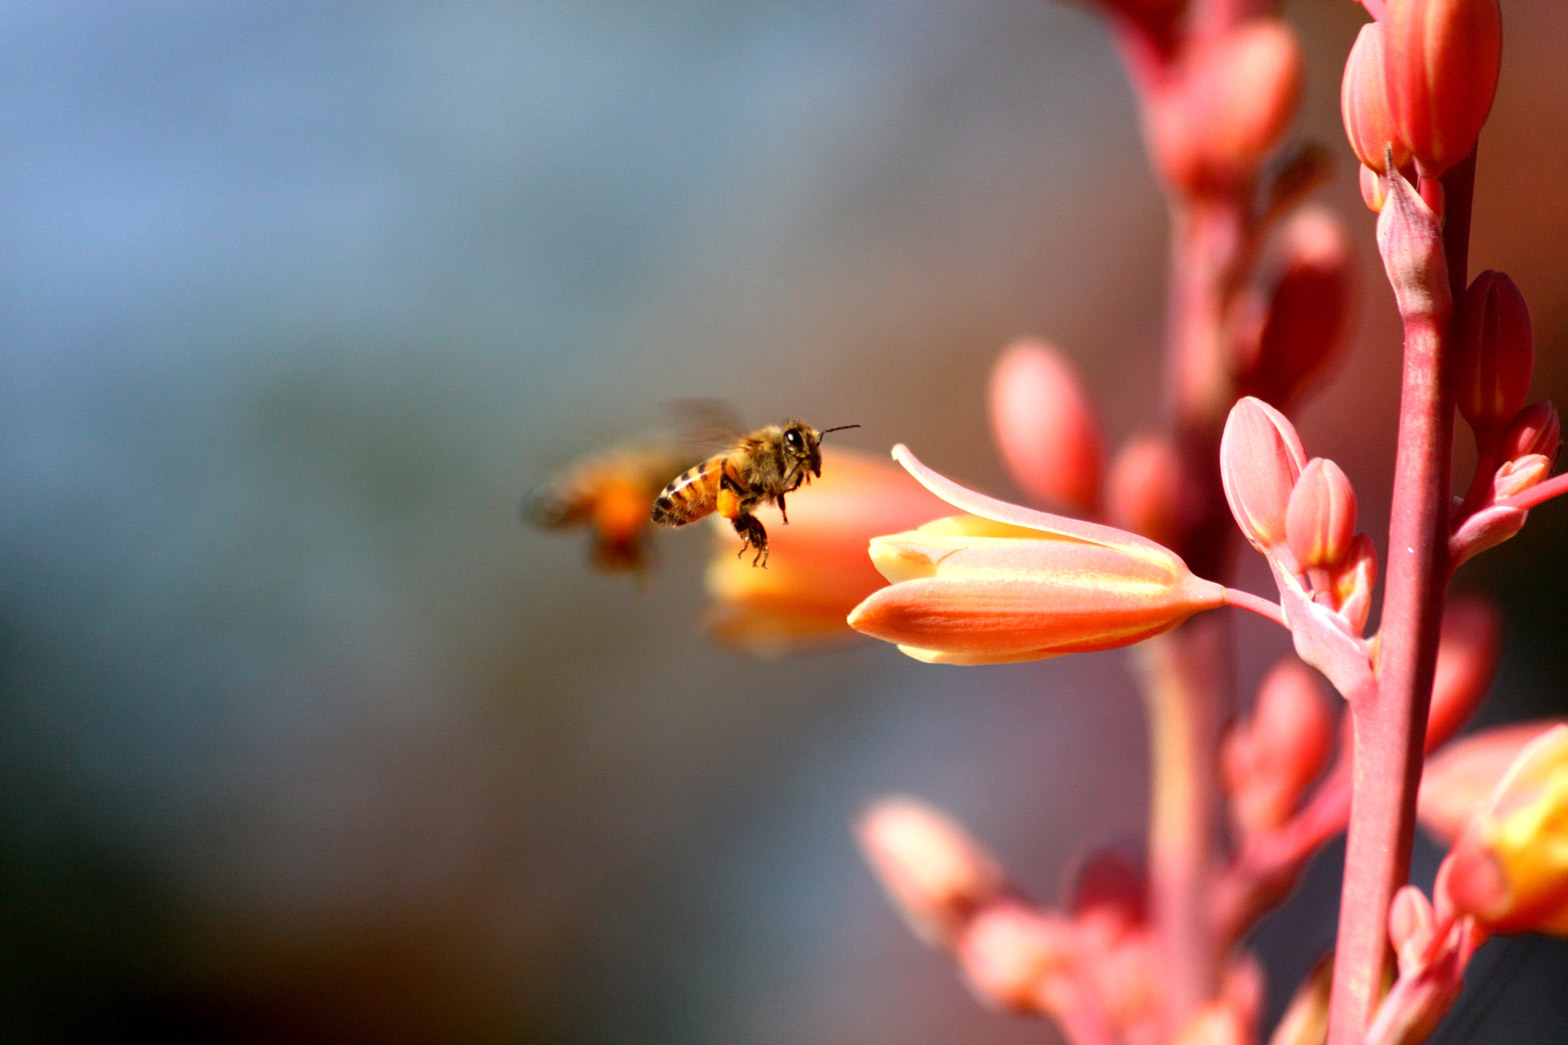 A bee visits Red Hesperaloe flowers.